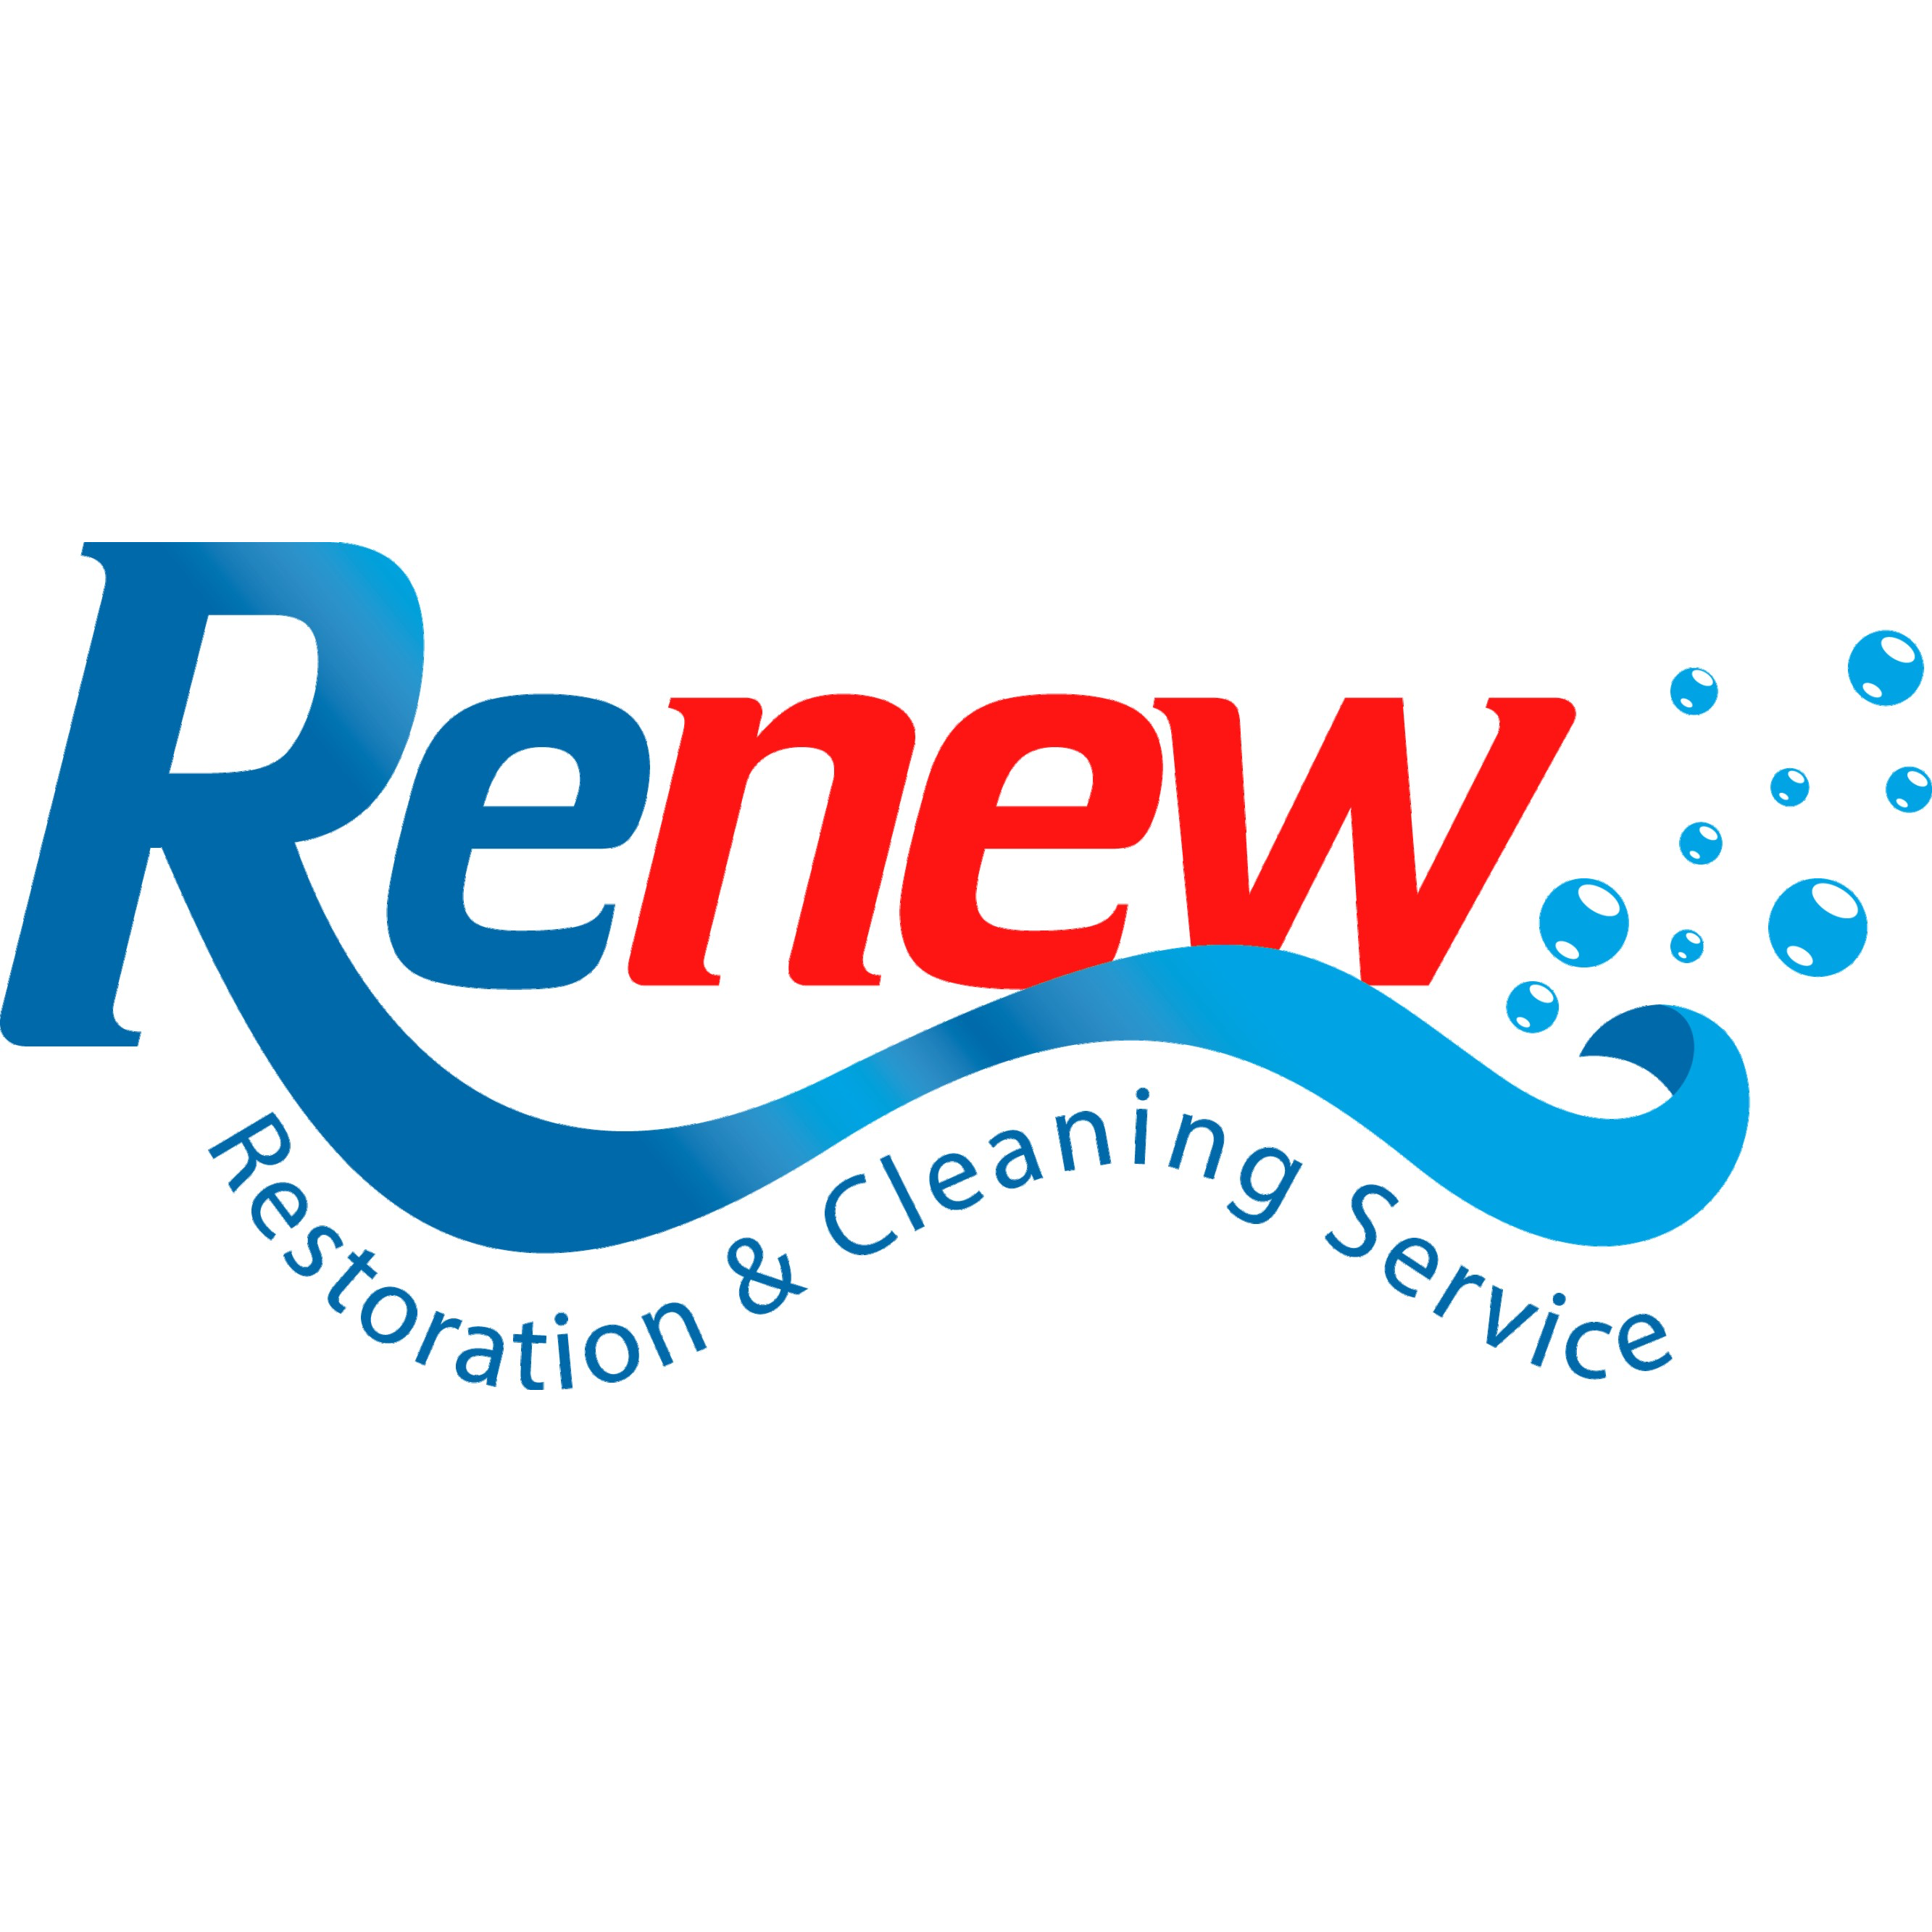 Renew Restoration and Cleaning Service